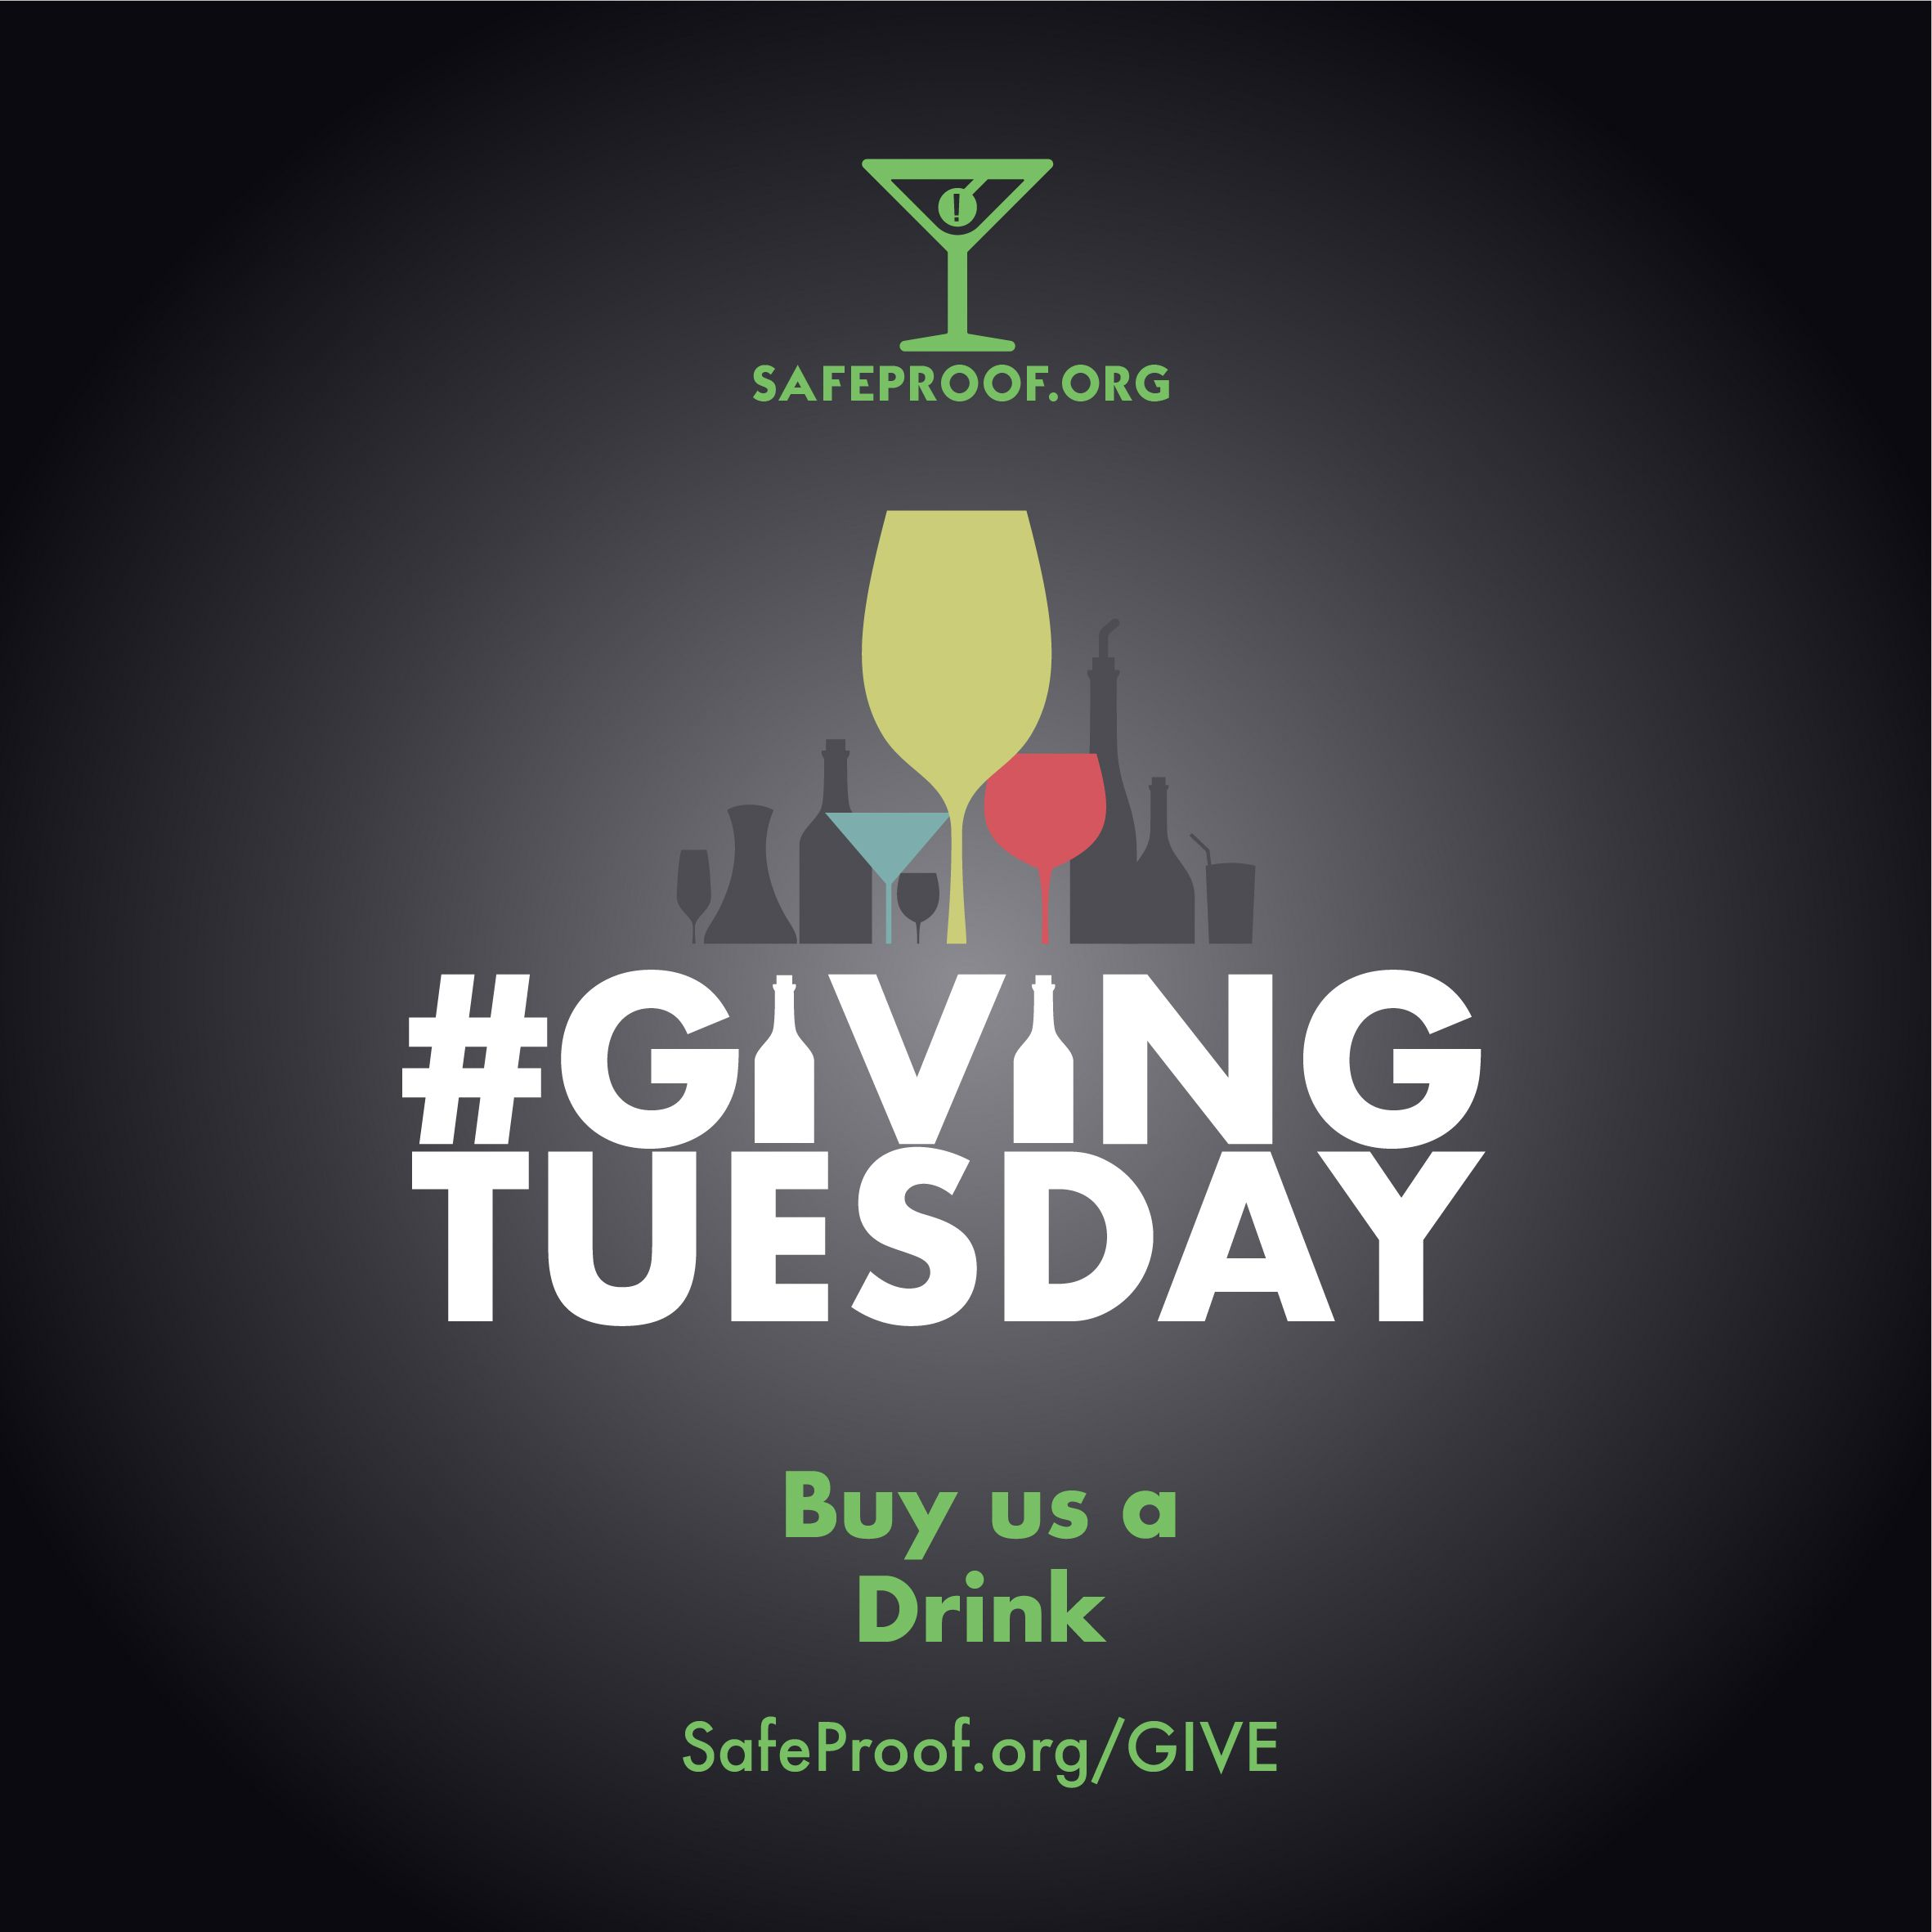 Pin by Safeproof org on GivingTuesday Giving tuesday